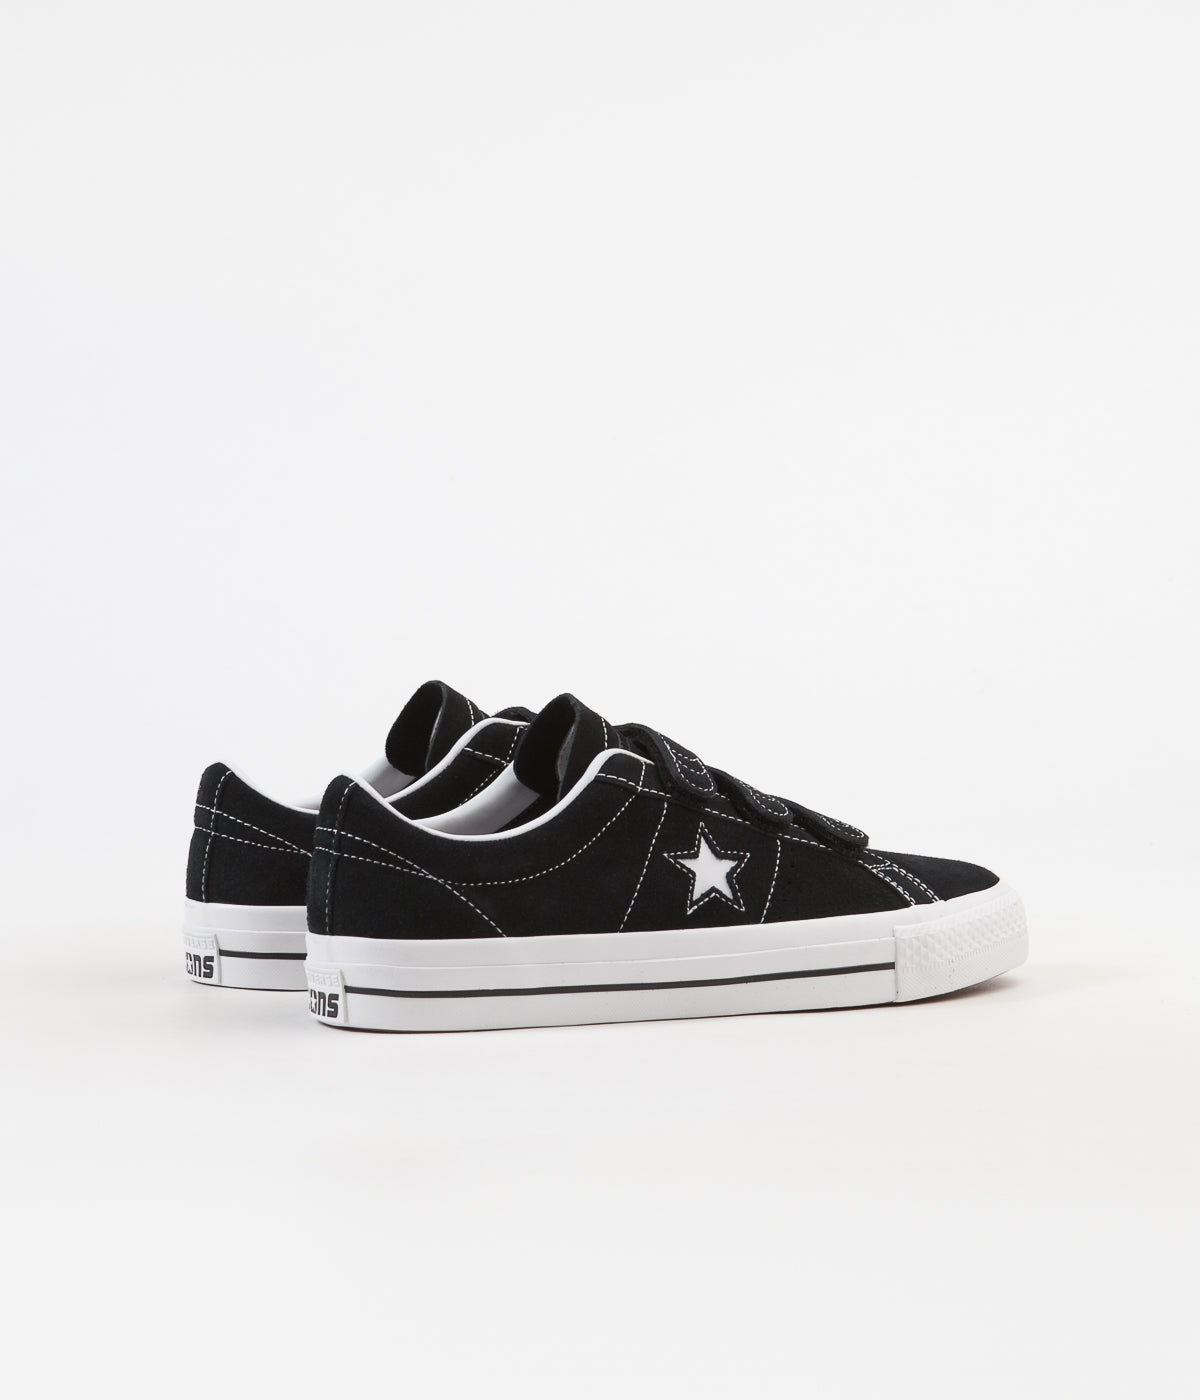 d0472cab26db ... Converse One Star Pro 3V Ox Shoes - Black   Pomegranate Red   White ...